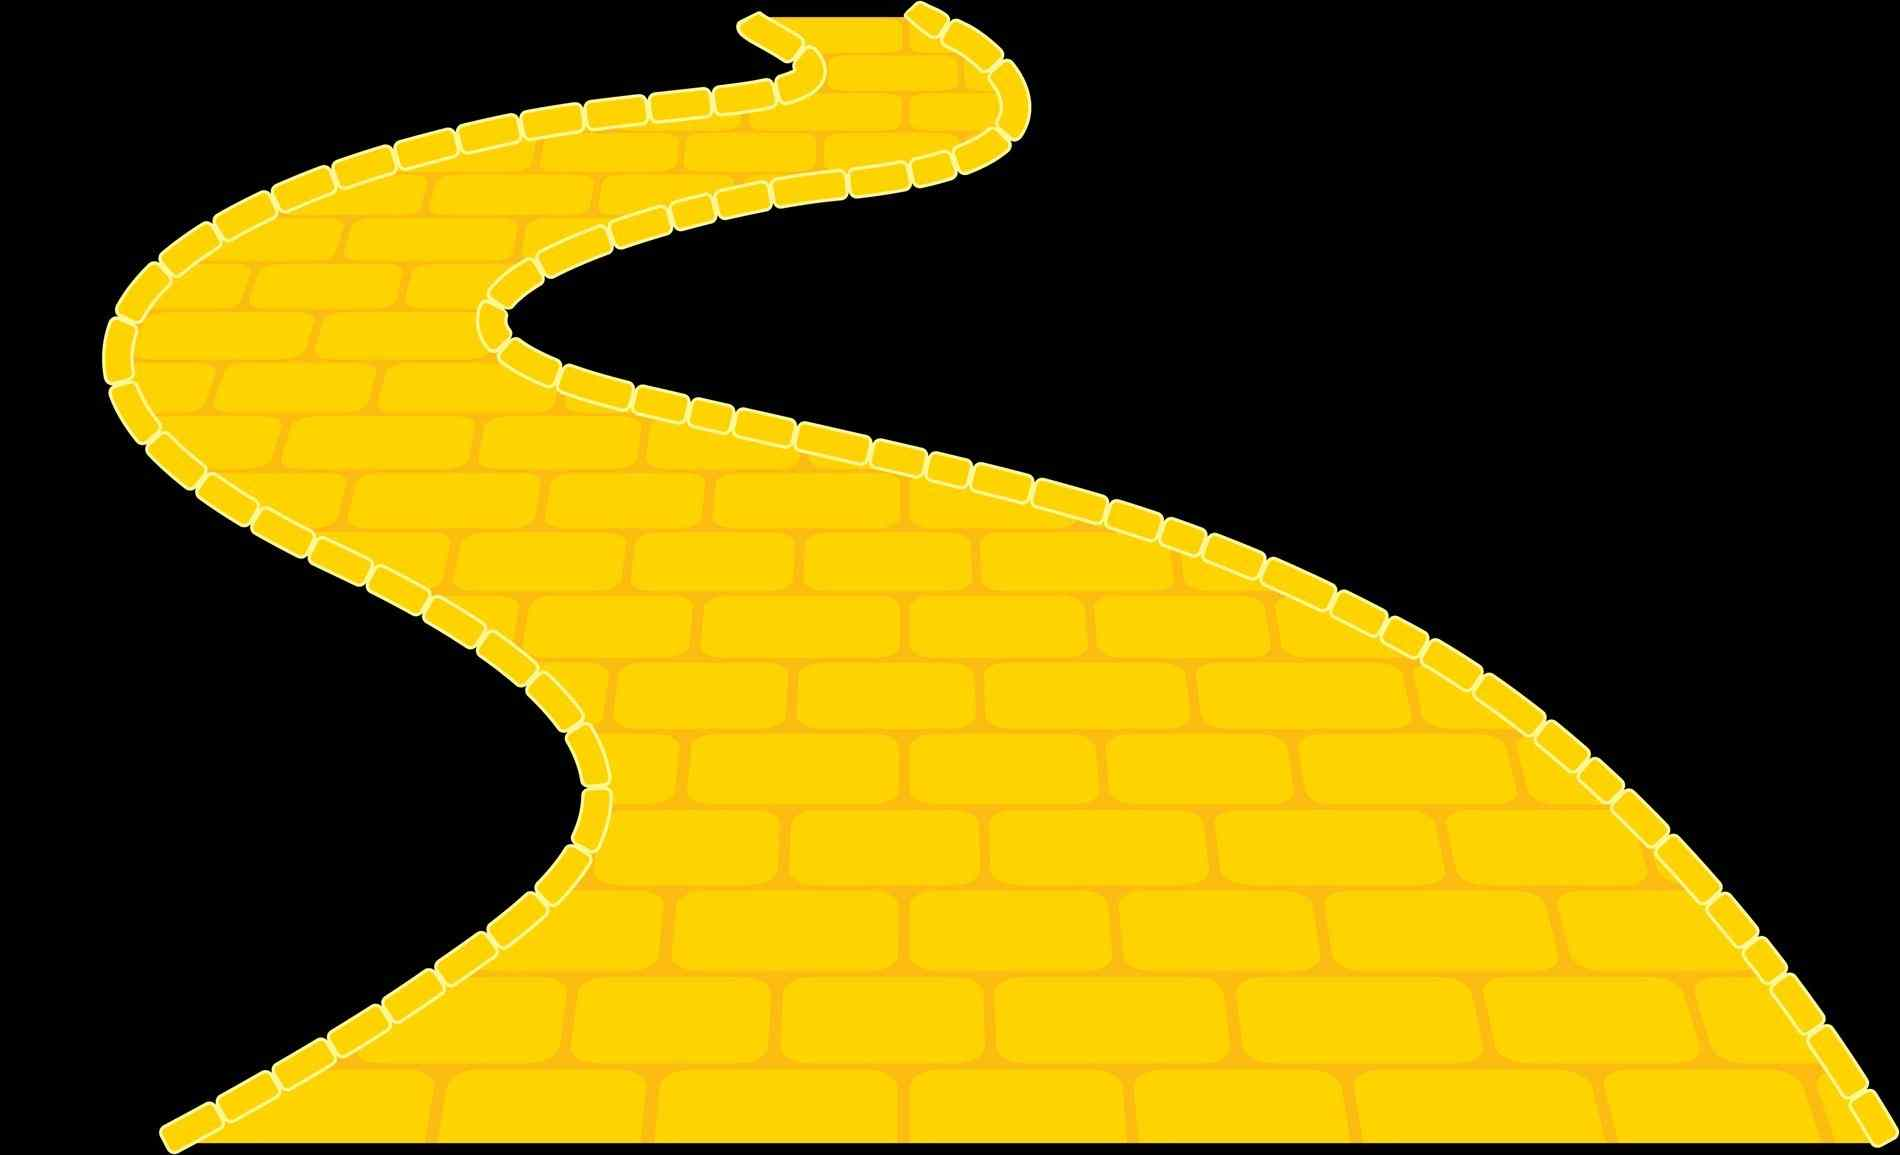 1900x1155 Brick And In Color Lego Brick Path Clipart Pencil And In Color